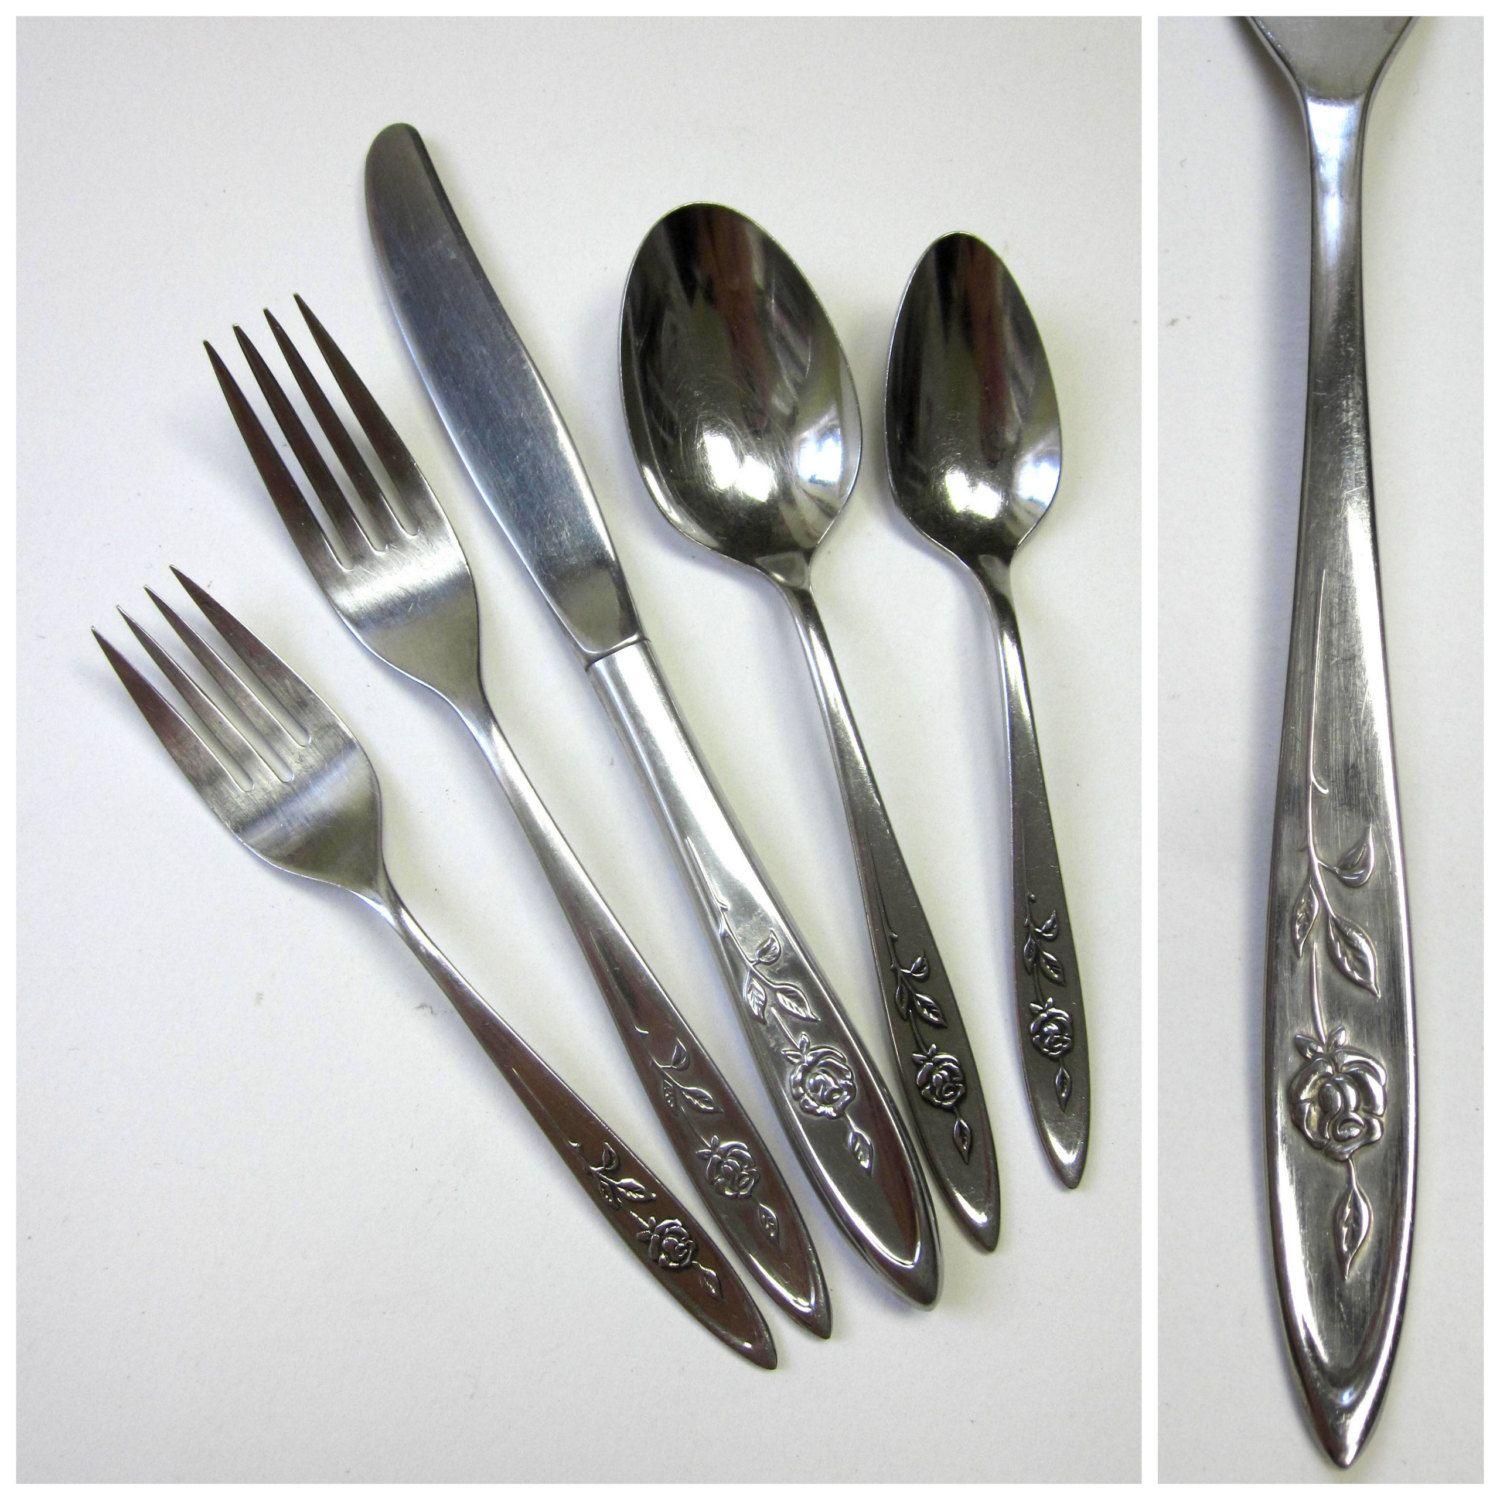 Oneida Stainless Flatware Patterns Discontinued Awesome Design Ideas